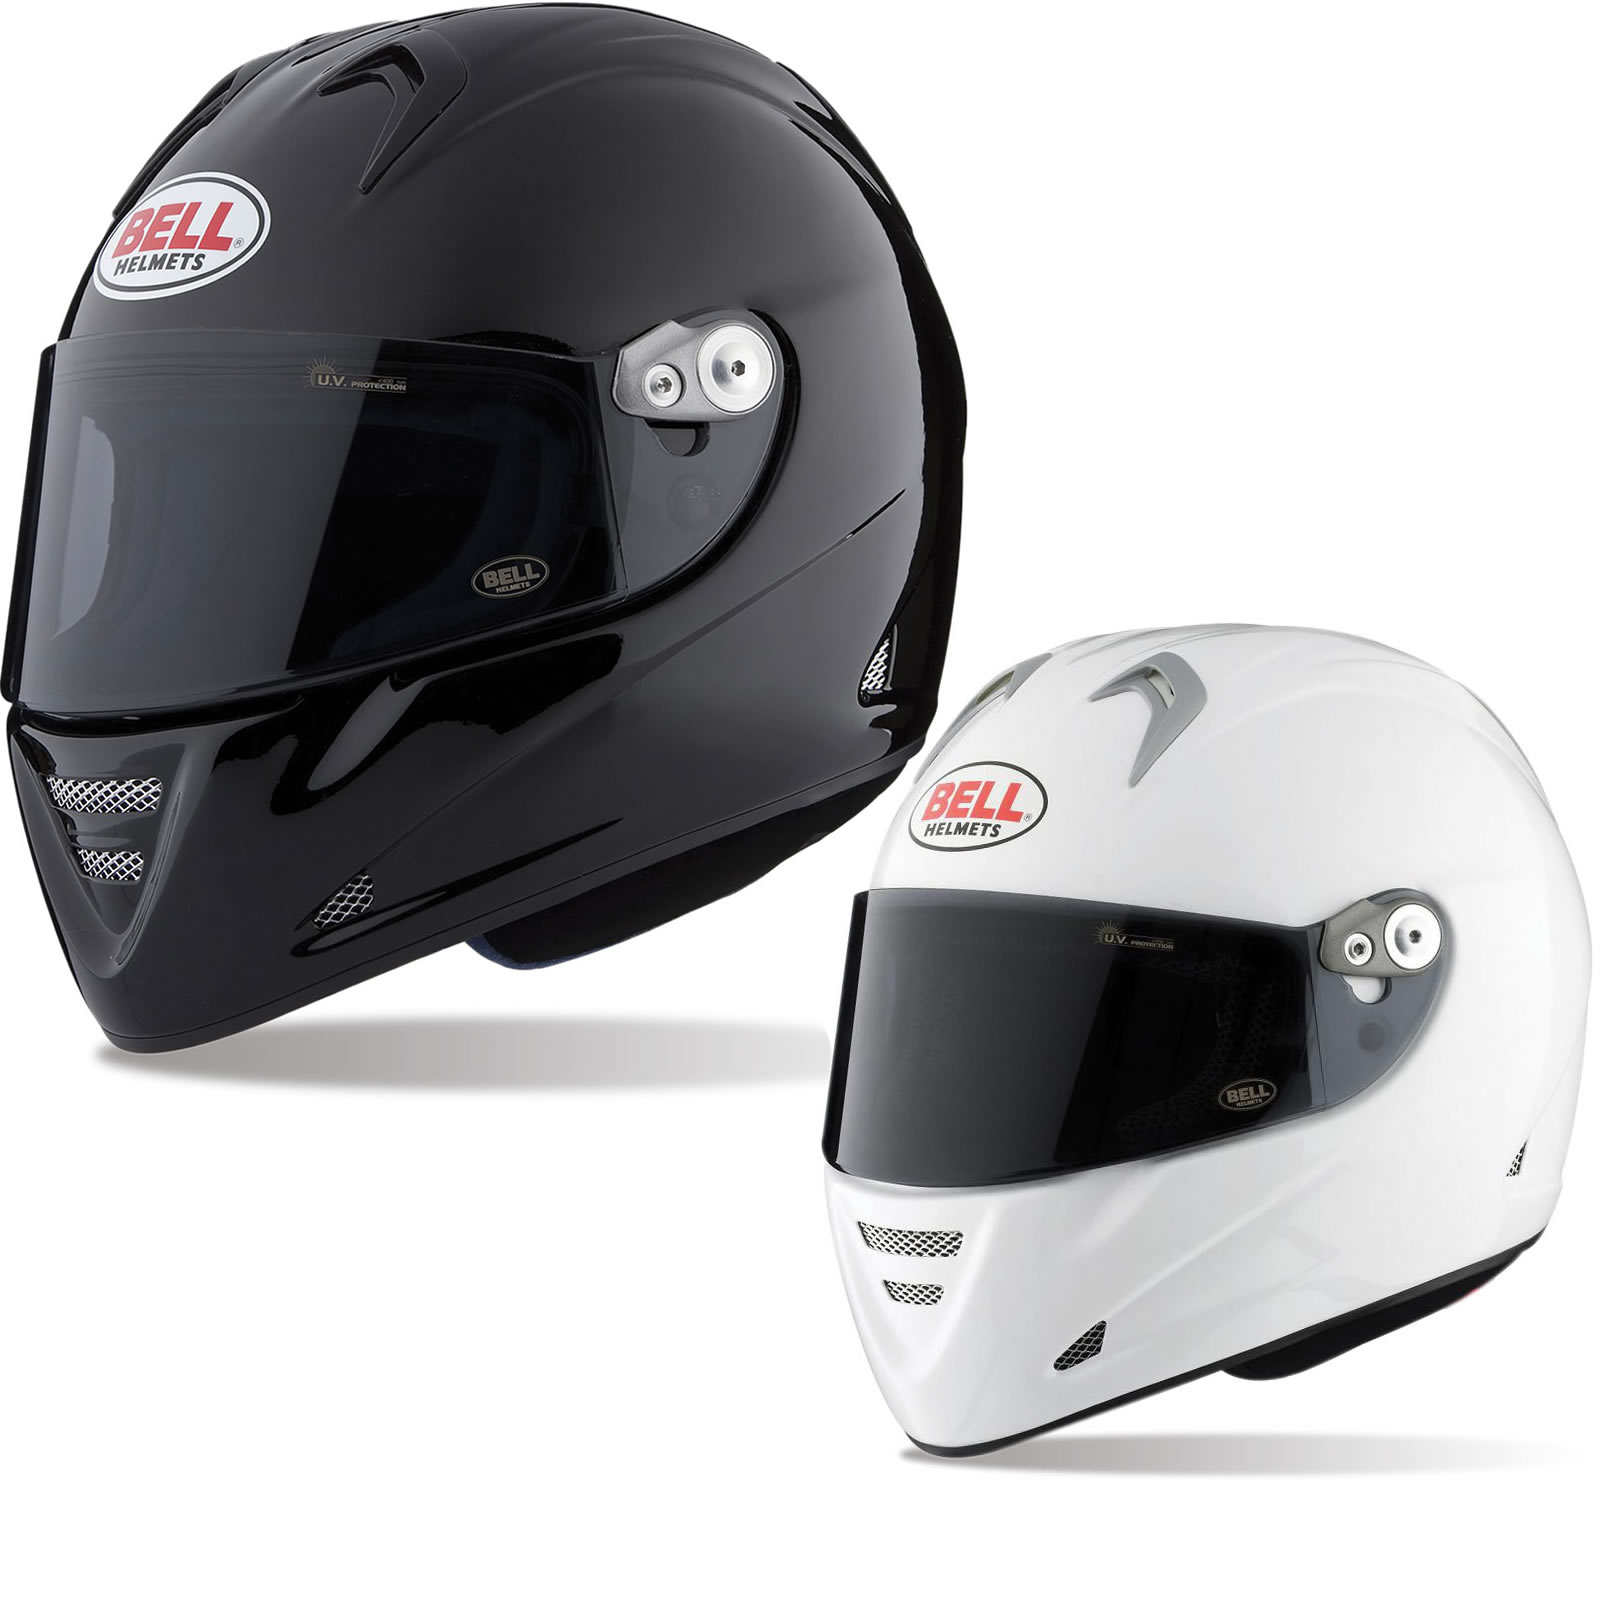 bell m5x solid motorcycle helmet full face helmets. Black Bedroom Furniture Sets. Home Design Ideas